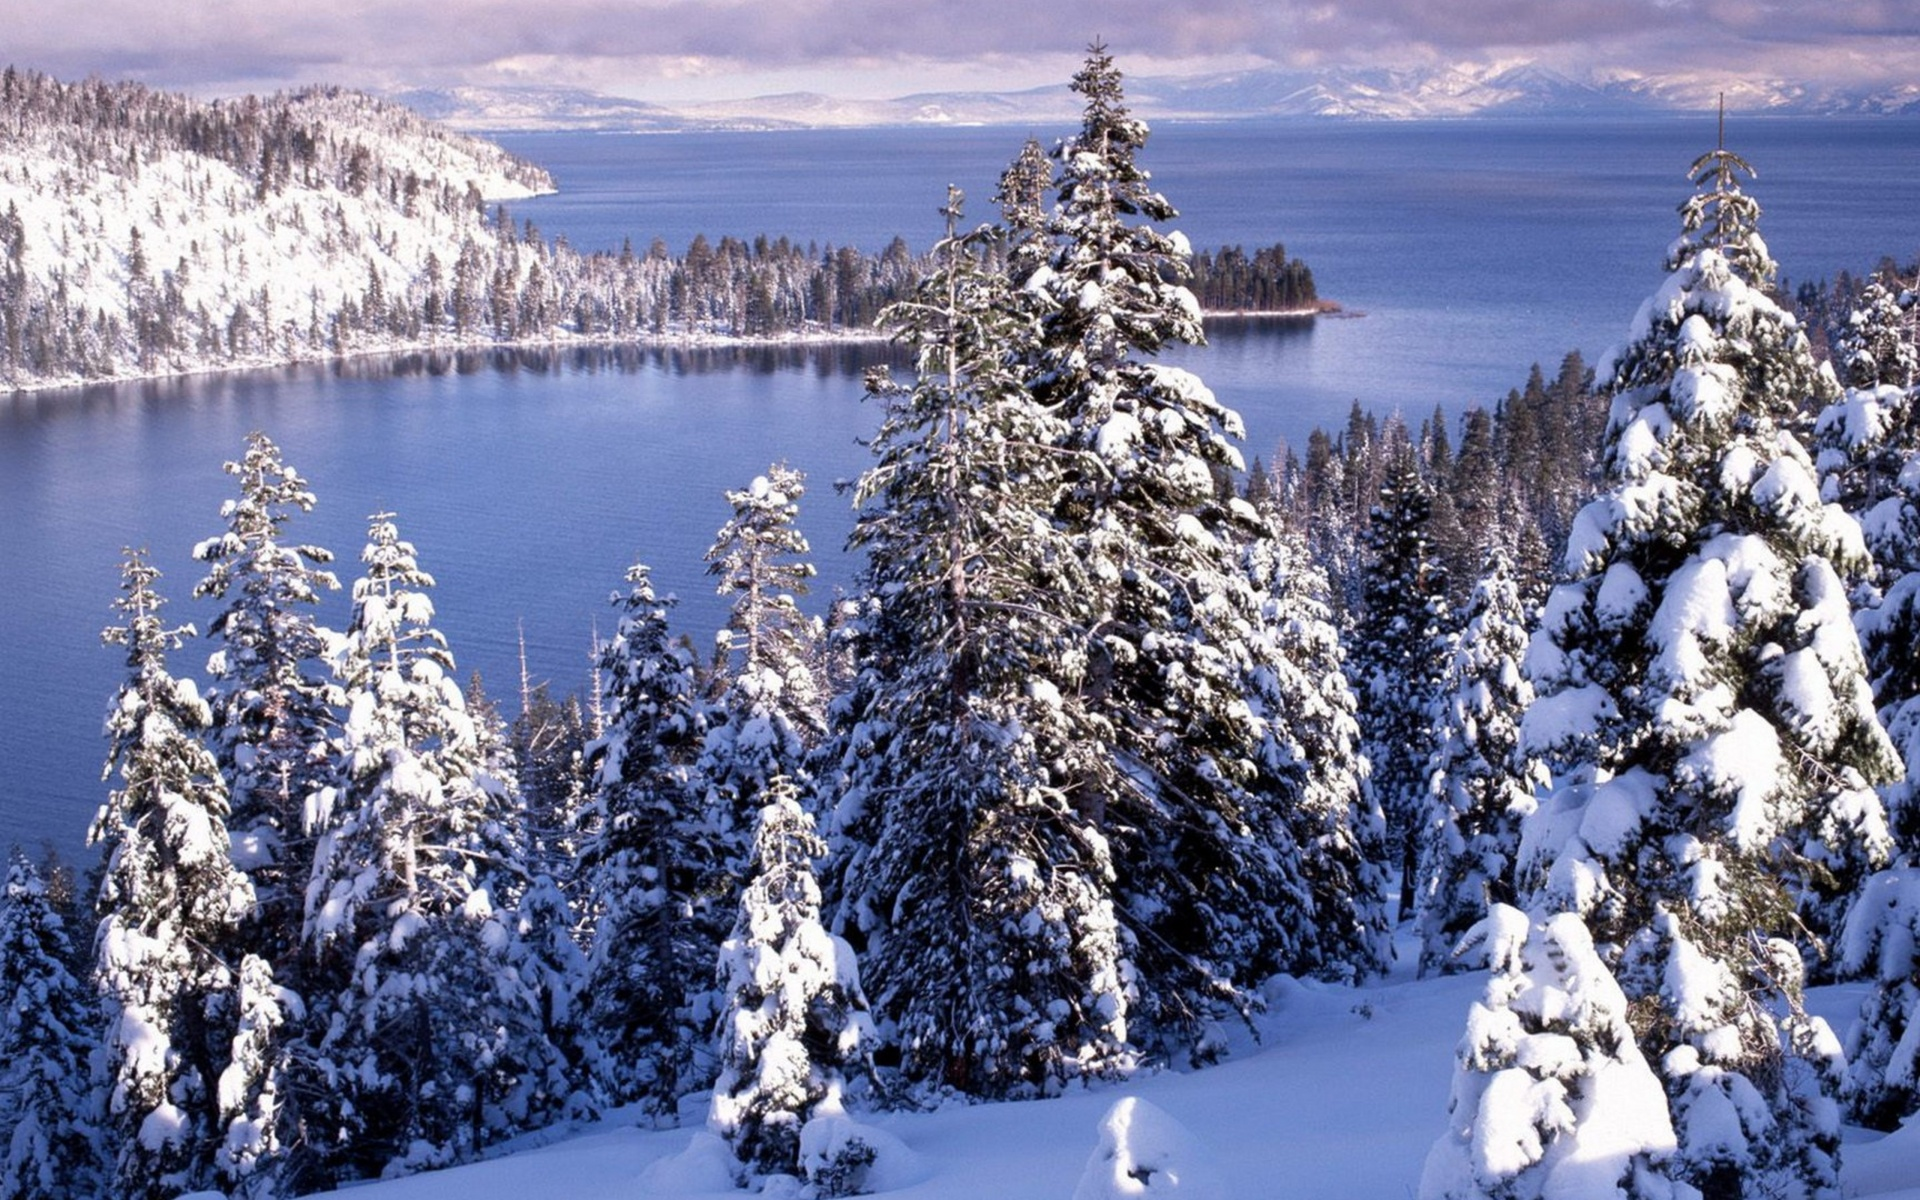 Winter White Forest And Cold Water